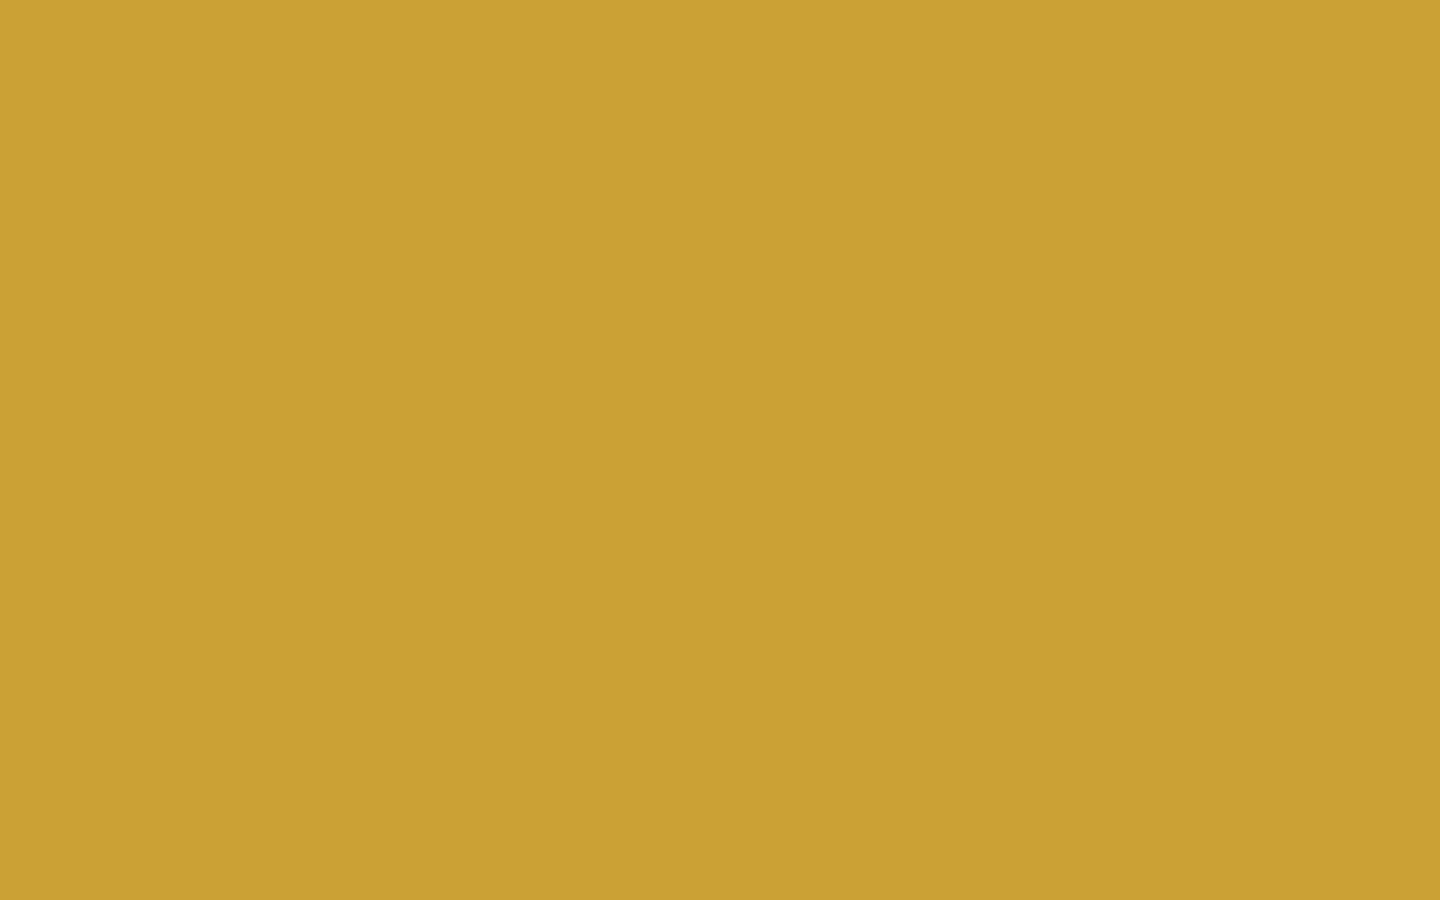 1440x900 Satin Sheen Gold Solid Color Background